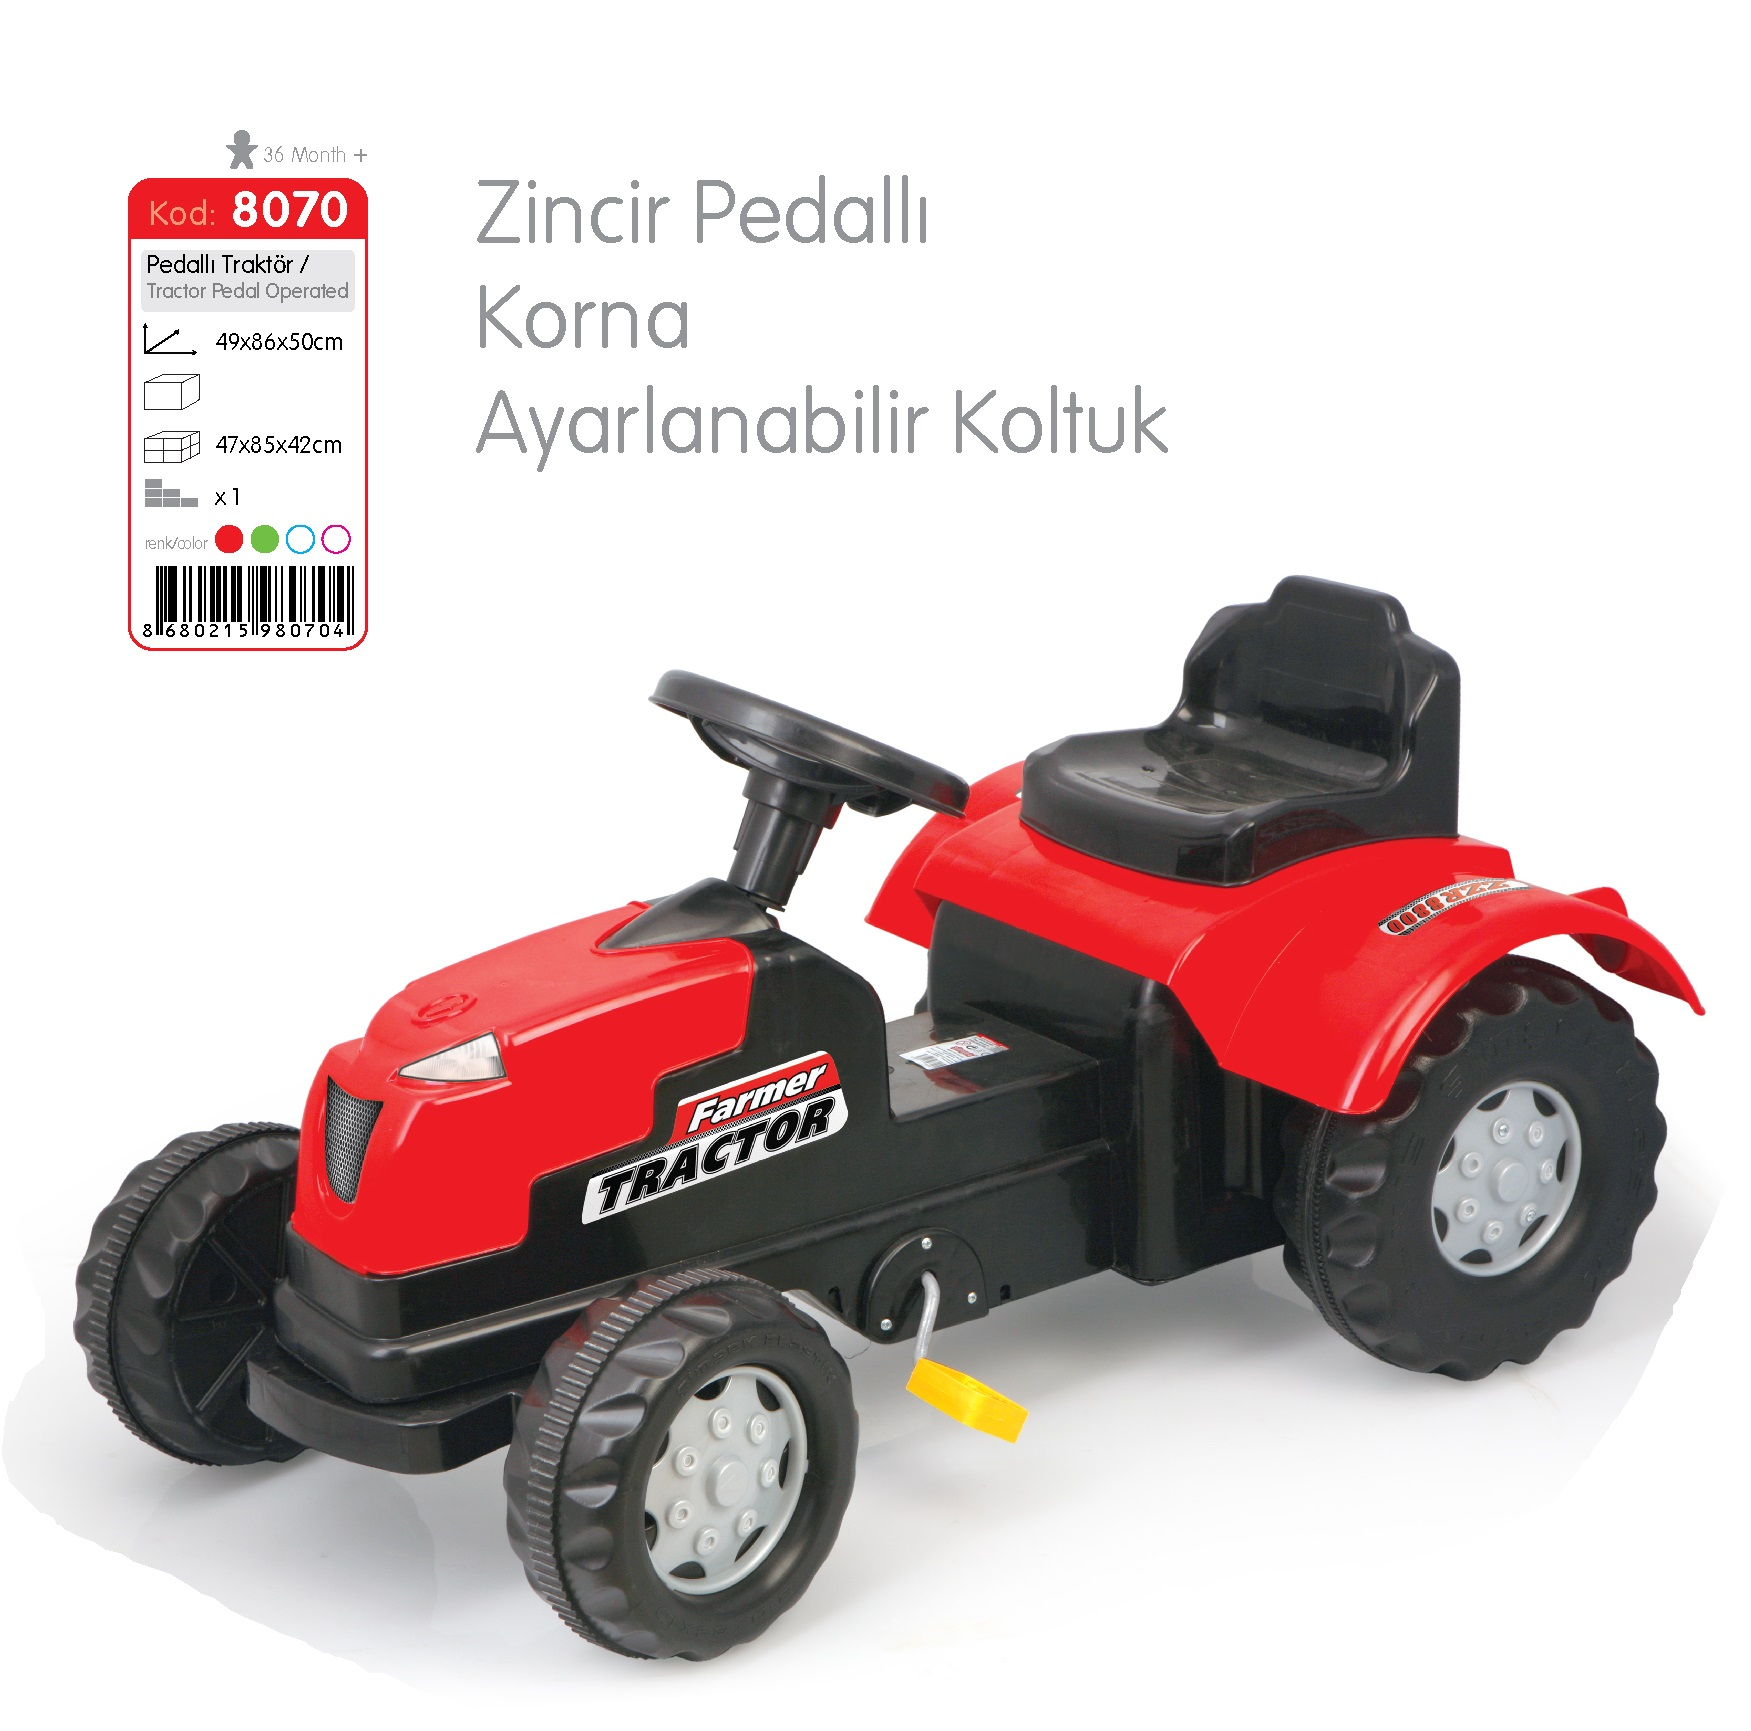 8070 pedal tractor